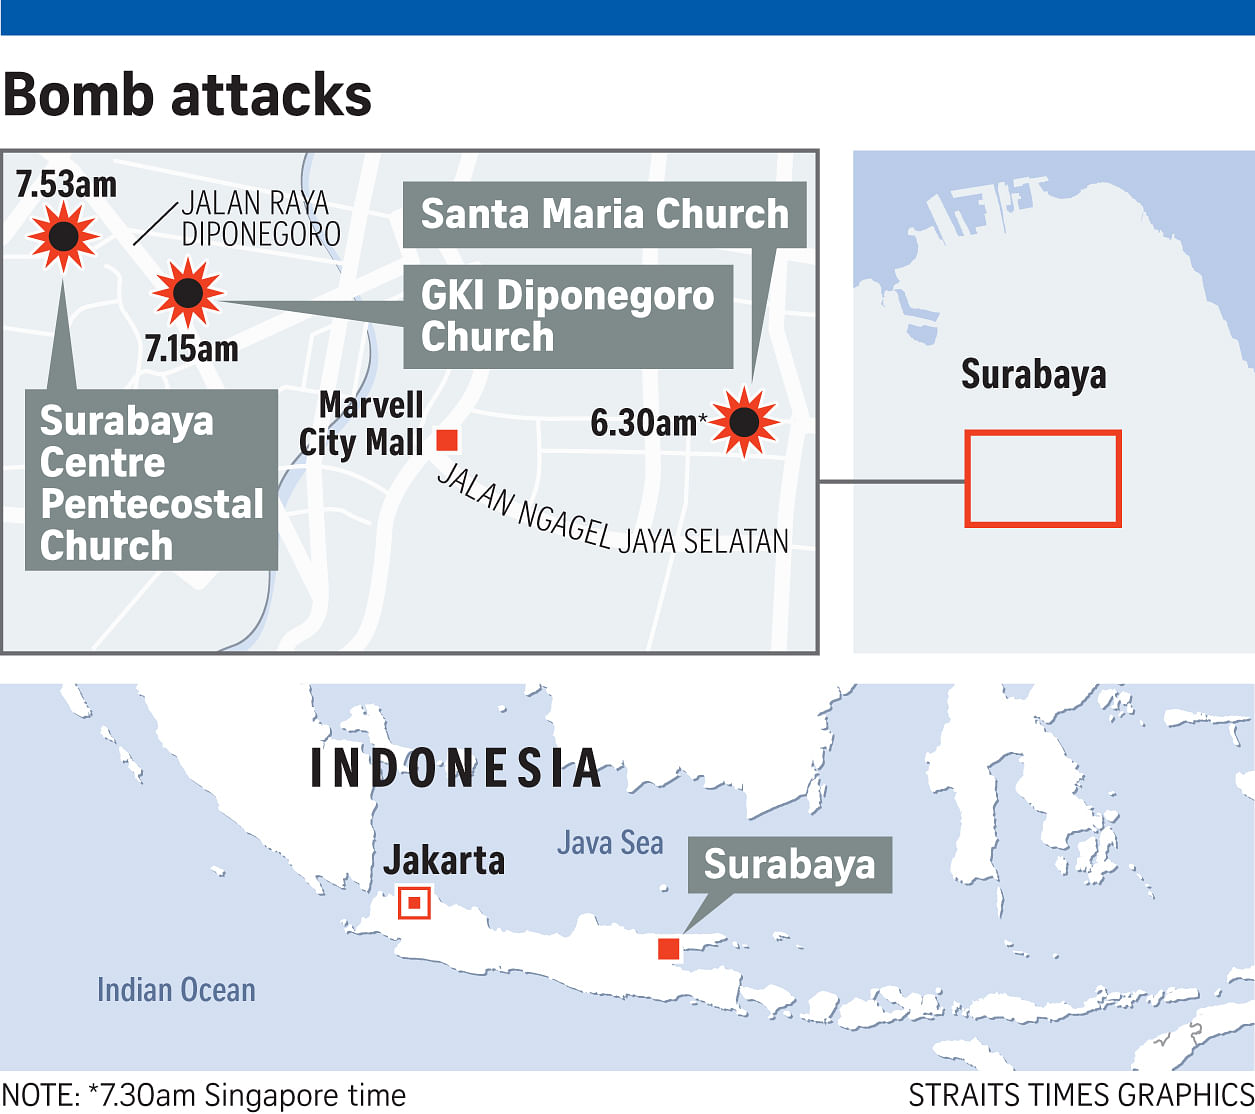 Indonesia's first female suicide bomber a mum of 4, SE Asia